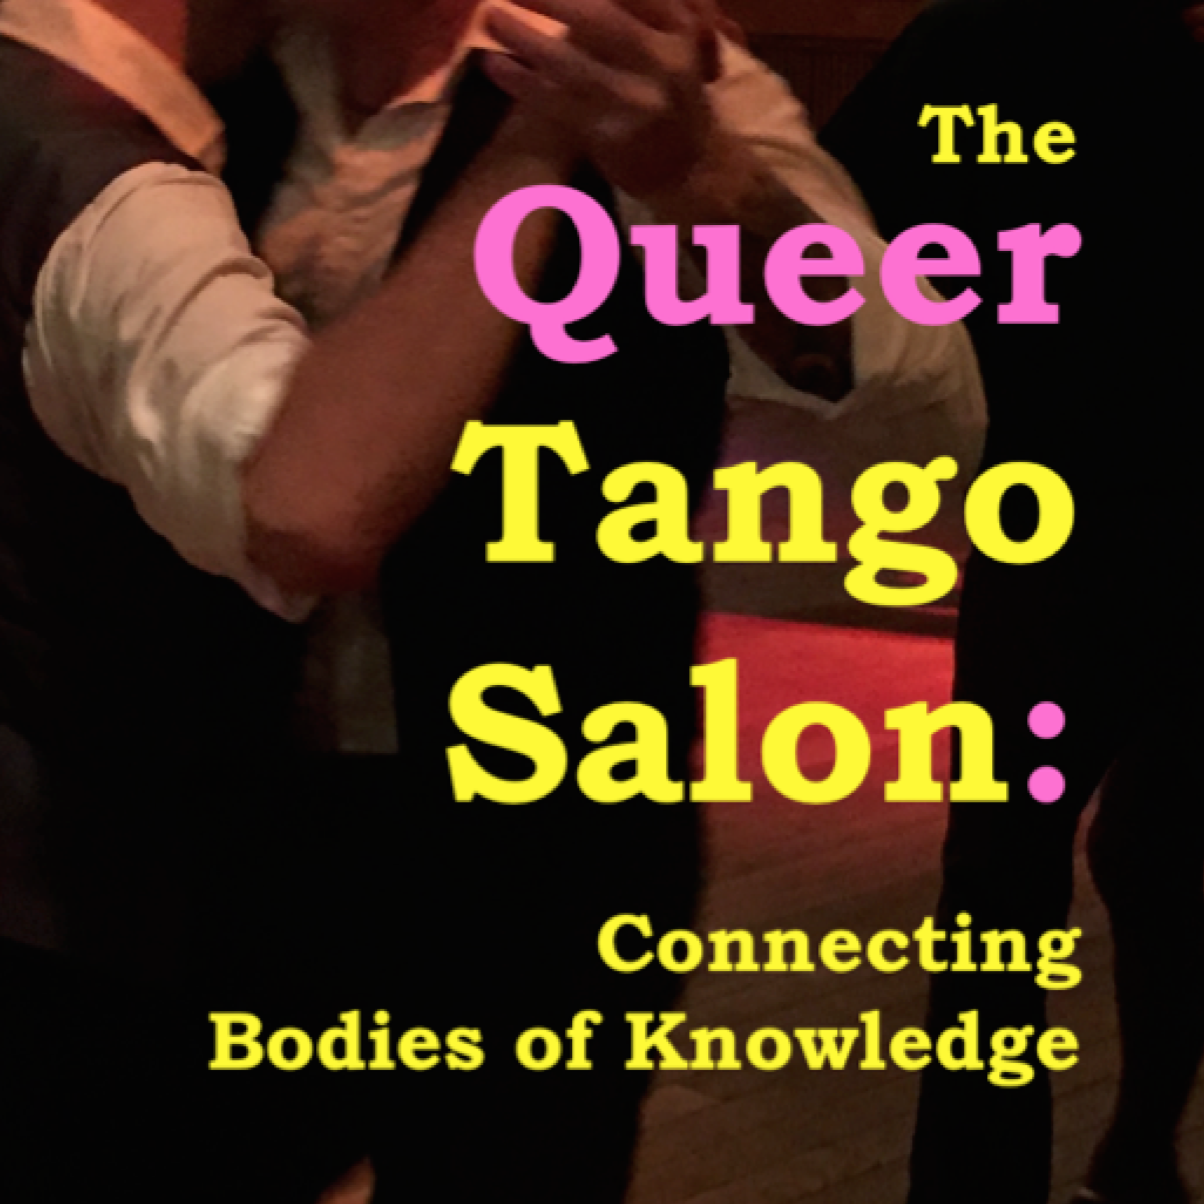 The Queer Tango Salon : Connecting Bodies of Knowledge